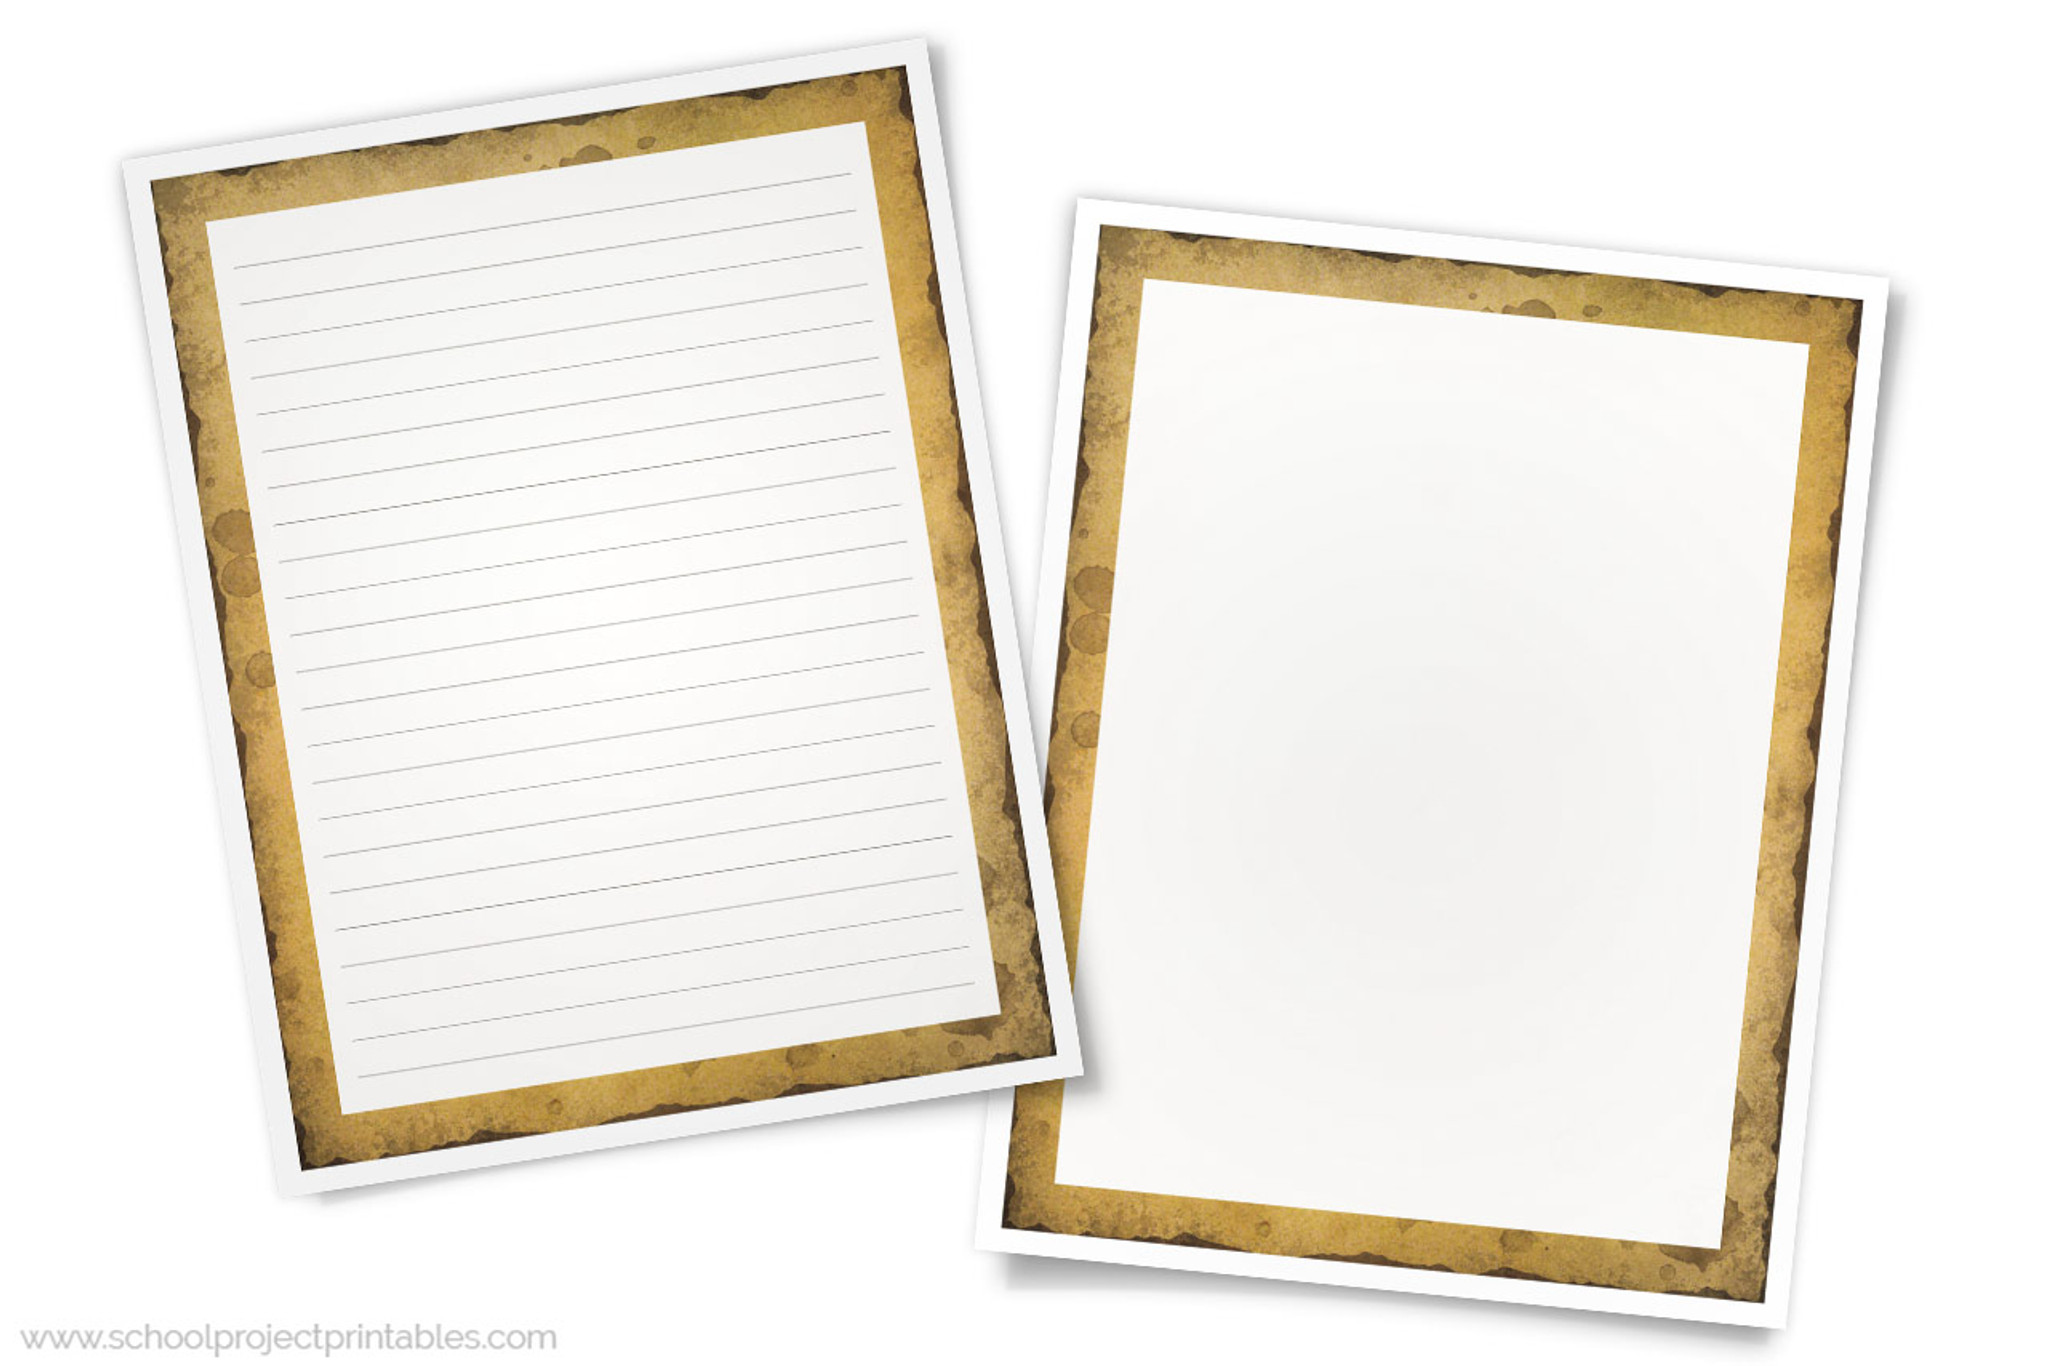 photograph relating to Printable Border Paper referred to as Historical past Acceptable Producing Templates - Paper with Aged Burnt Parchment Border